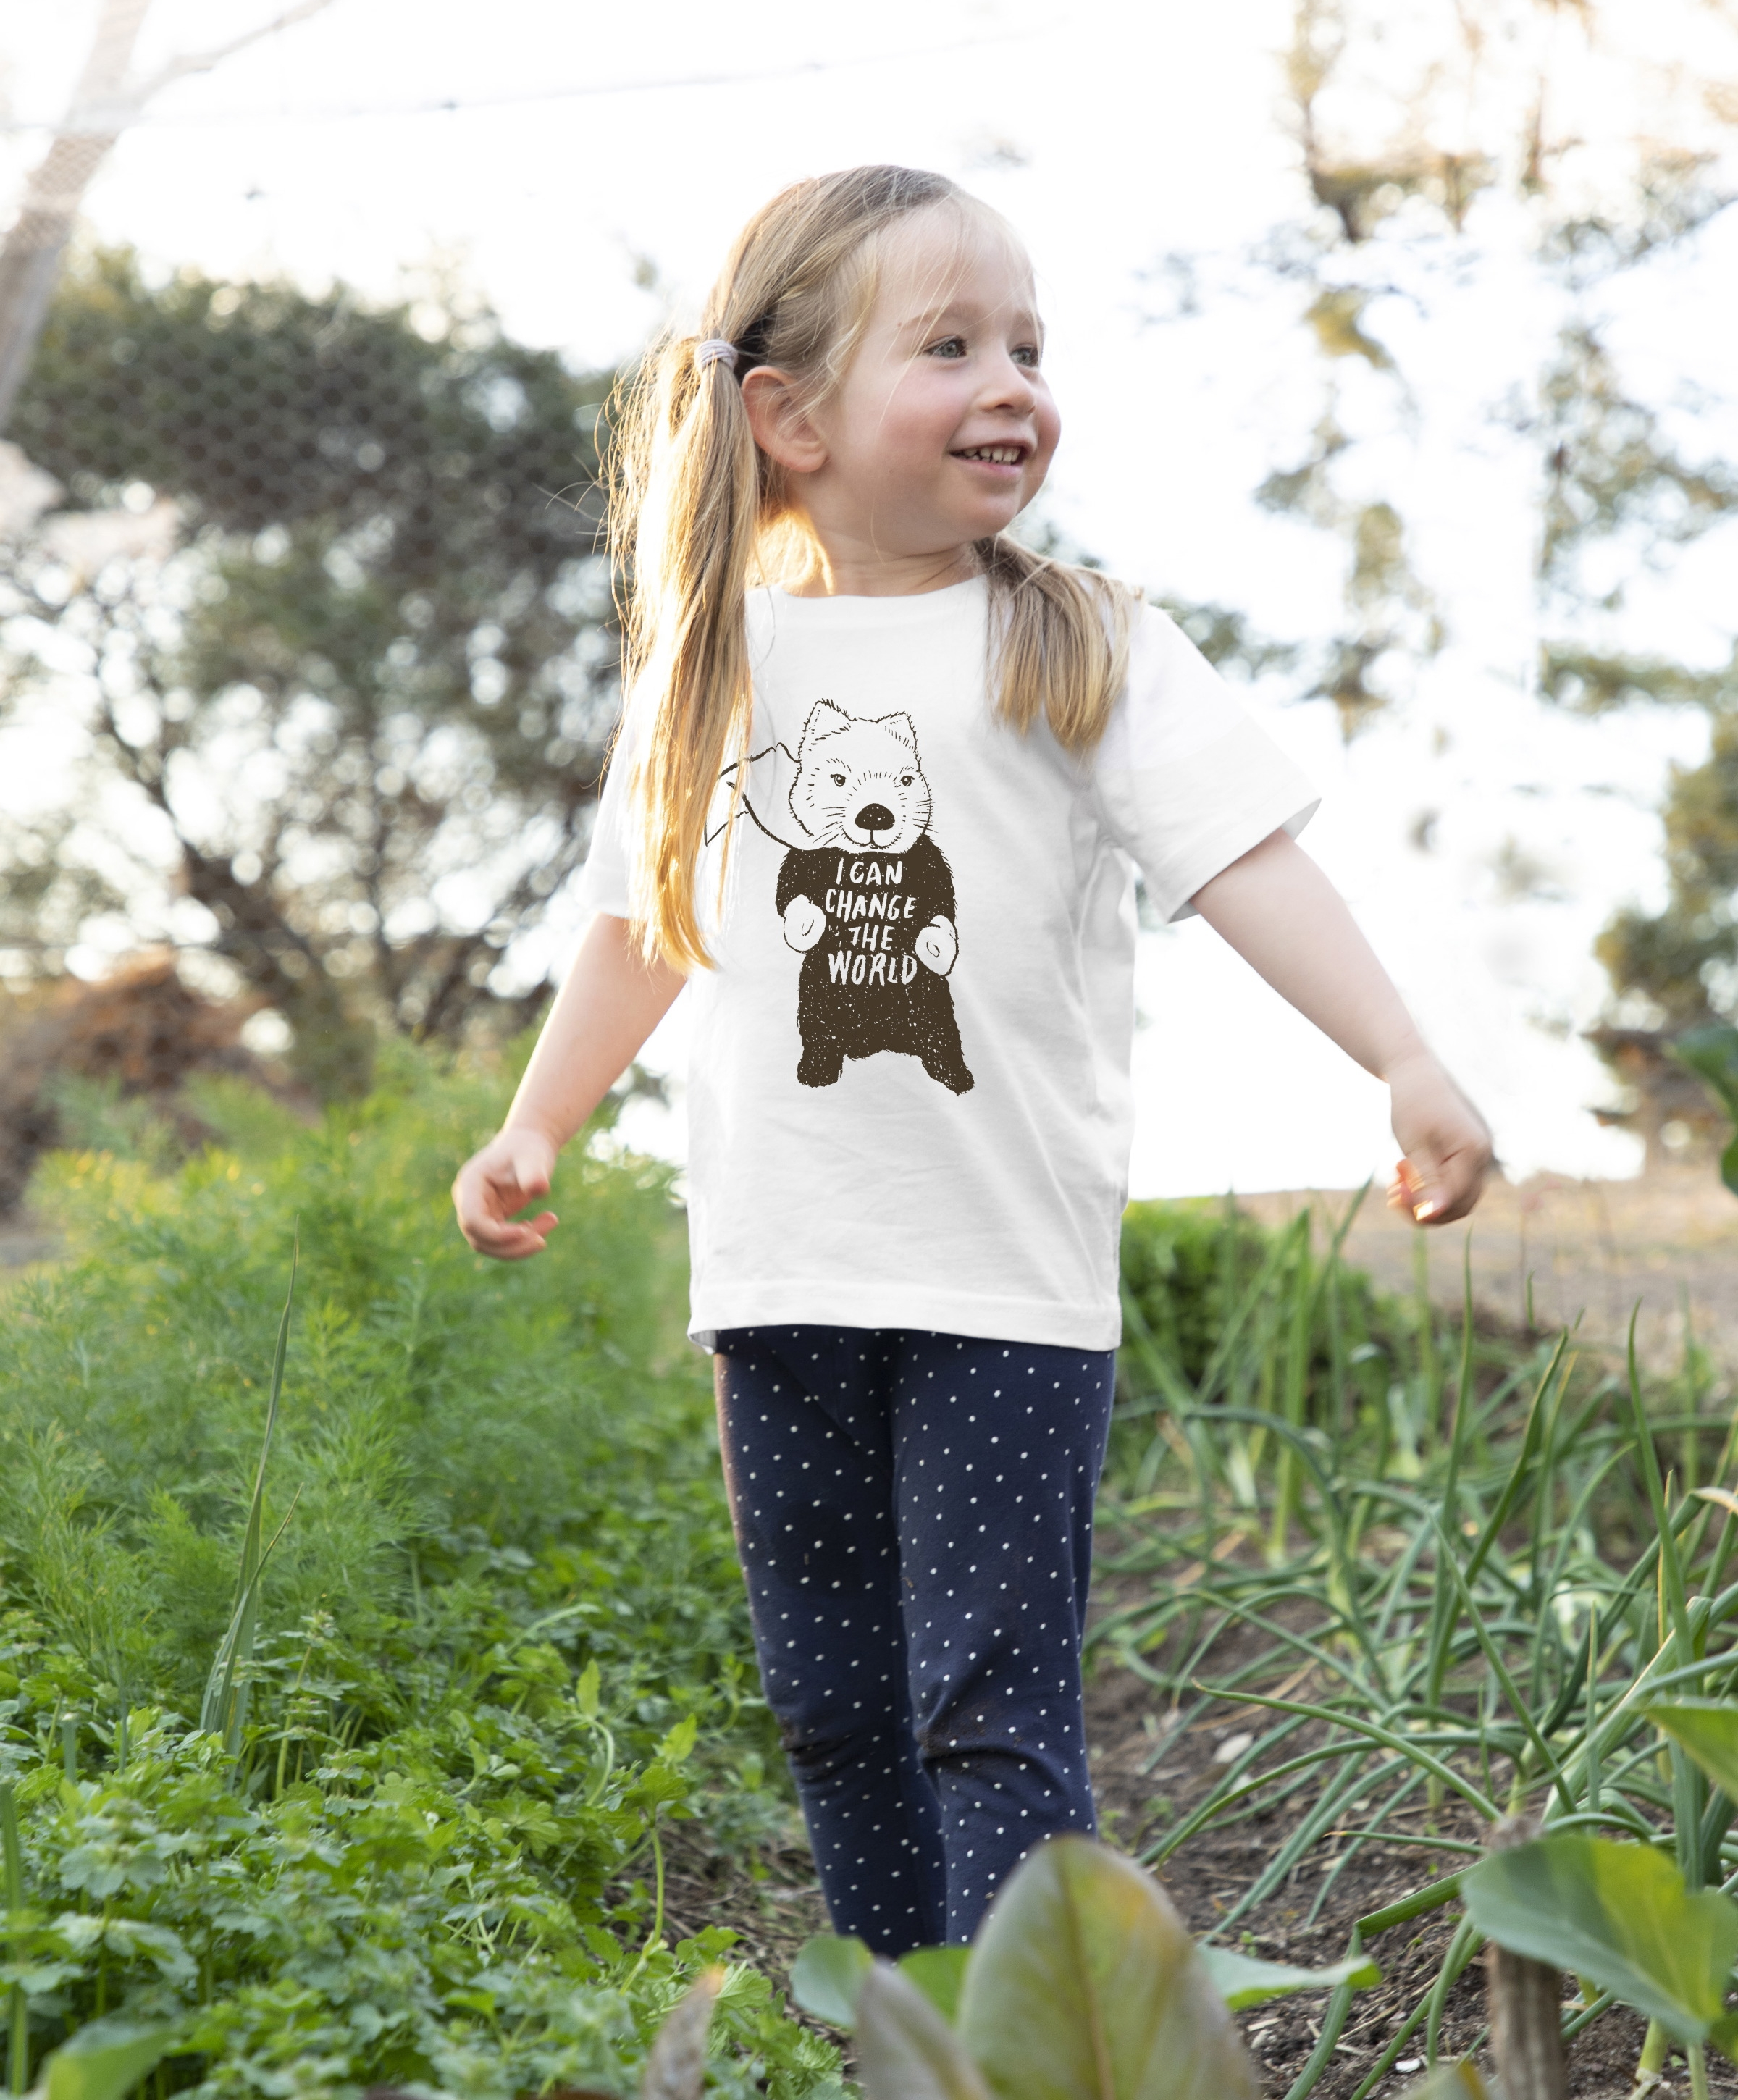 SHOP - Help us continue to support and raise awareness for our farmers and growers